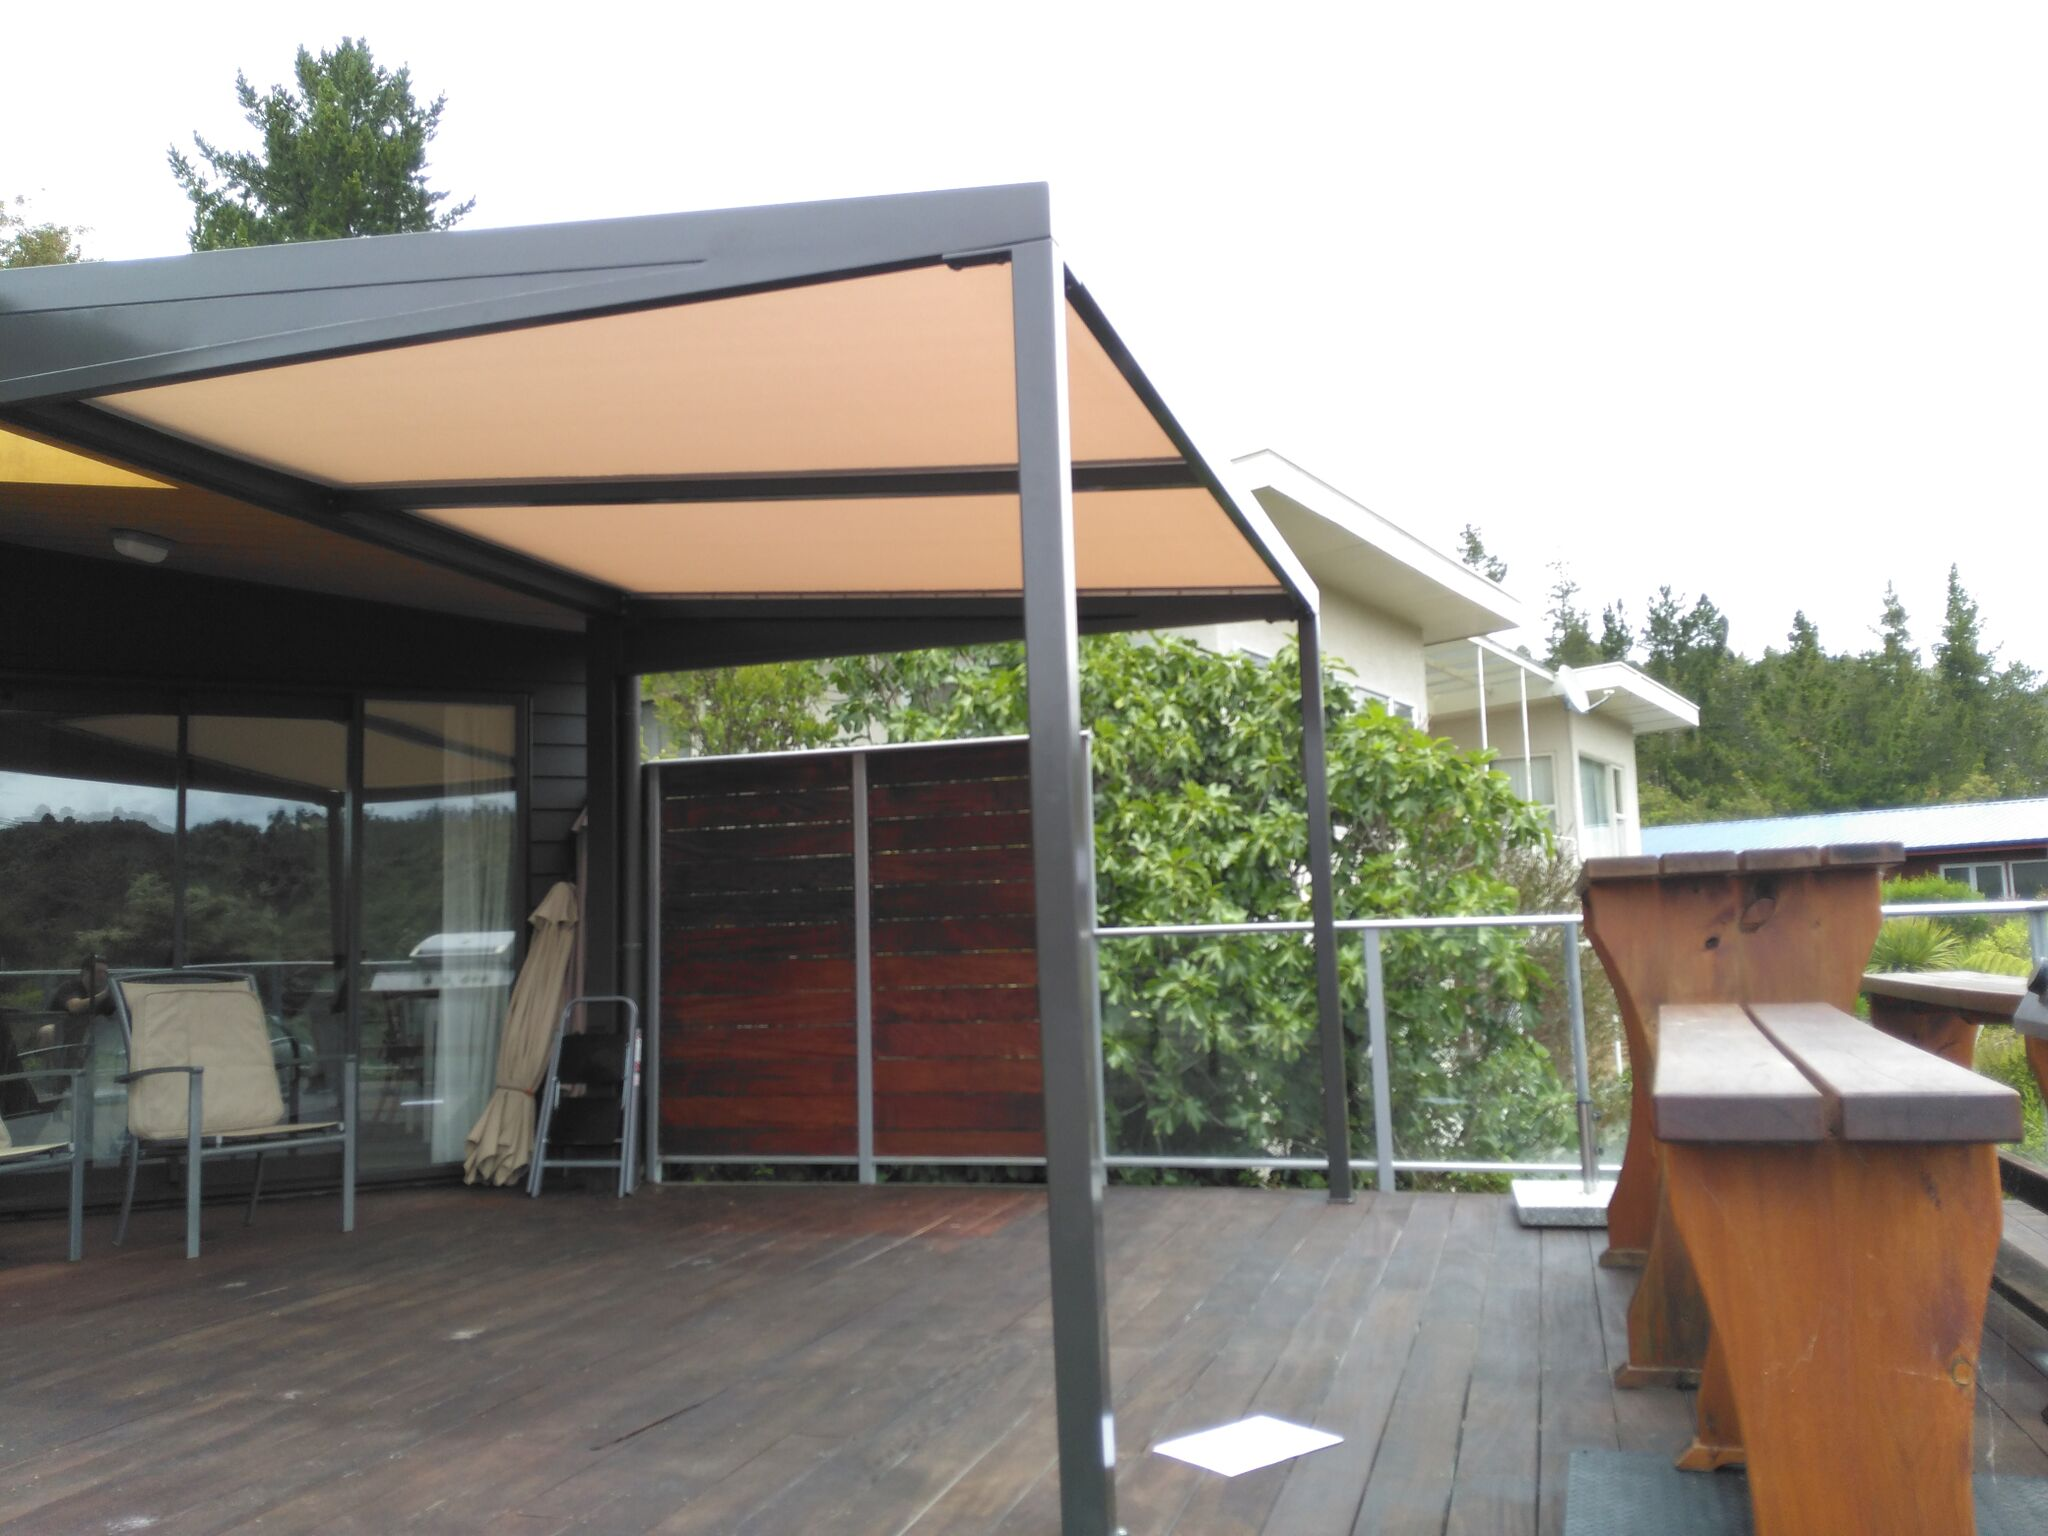 for roof awnings adjustable deck up gazebo pop shade with trellis extendable replacement wood best retractable decks pergola closed on ideas size canopy of awning cloth full design